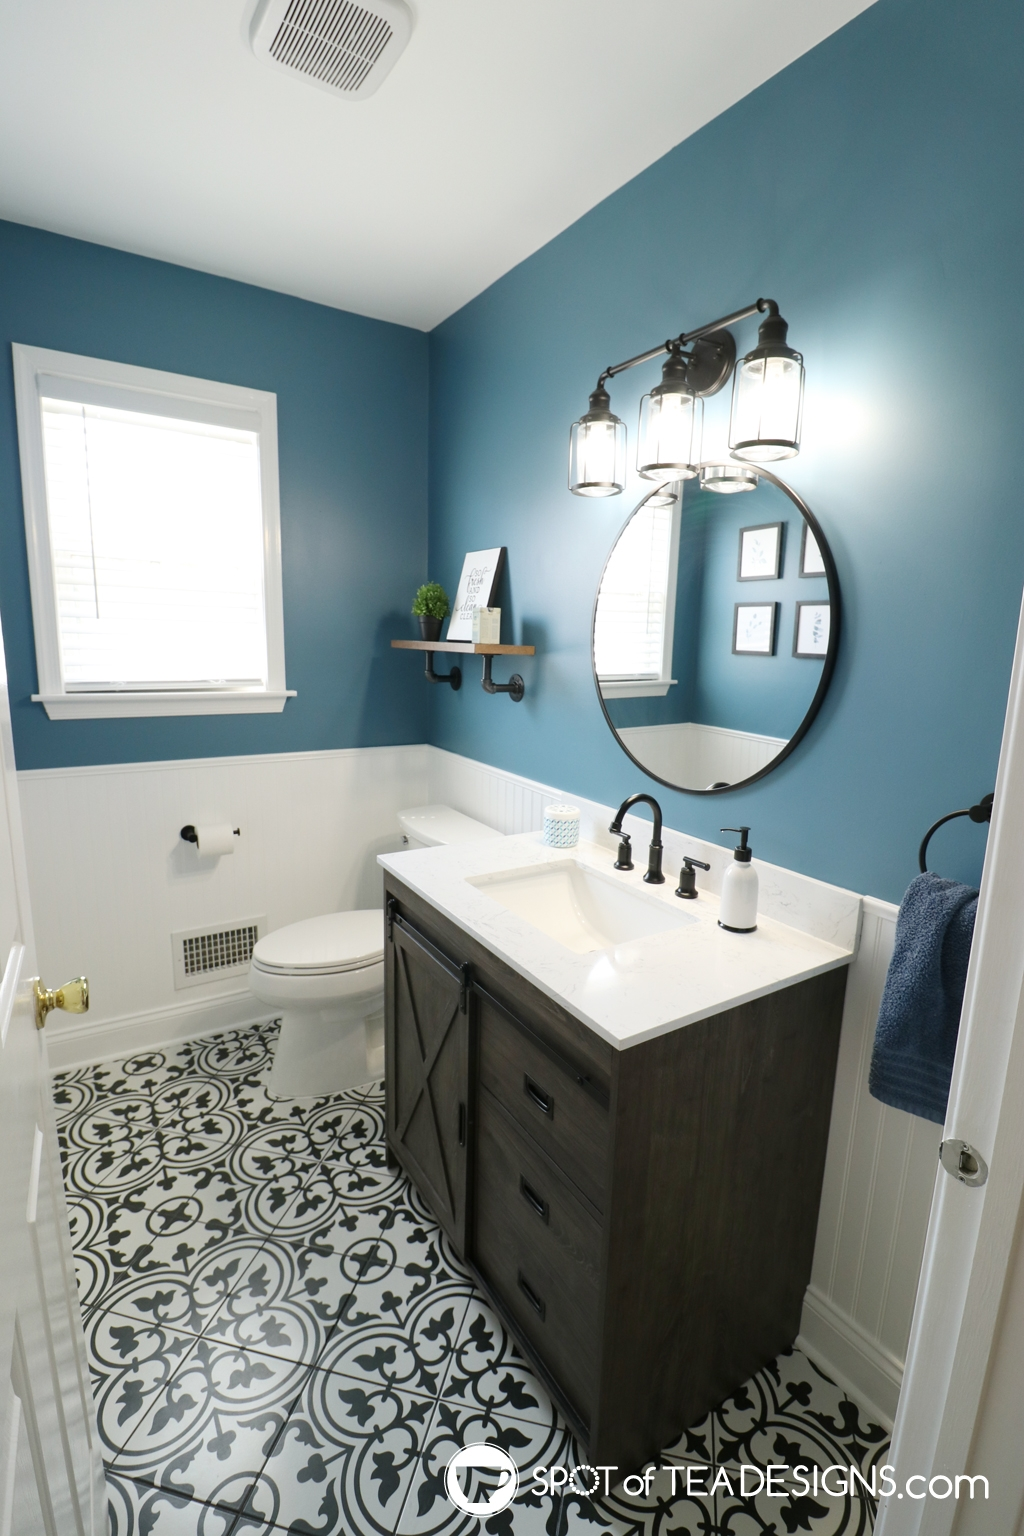 Modern half bathroom remodel - after photos of the finished space with resources | spotofteadesigns.com